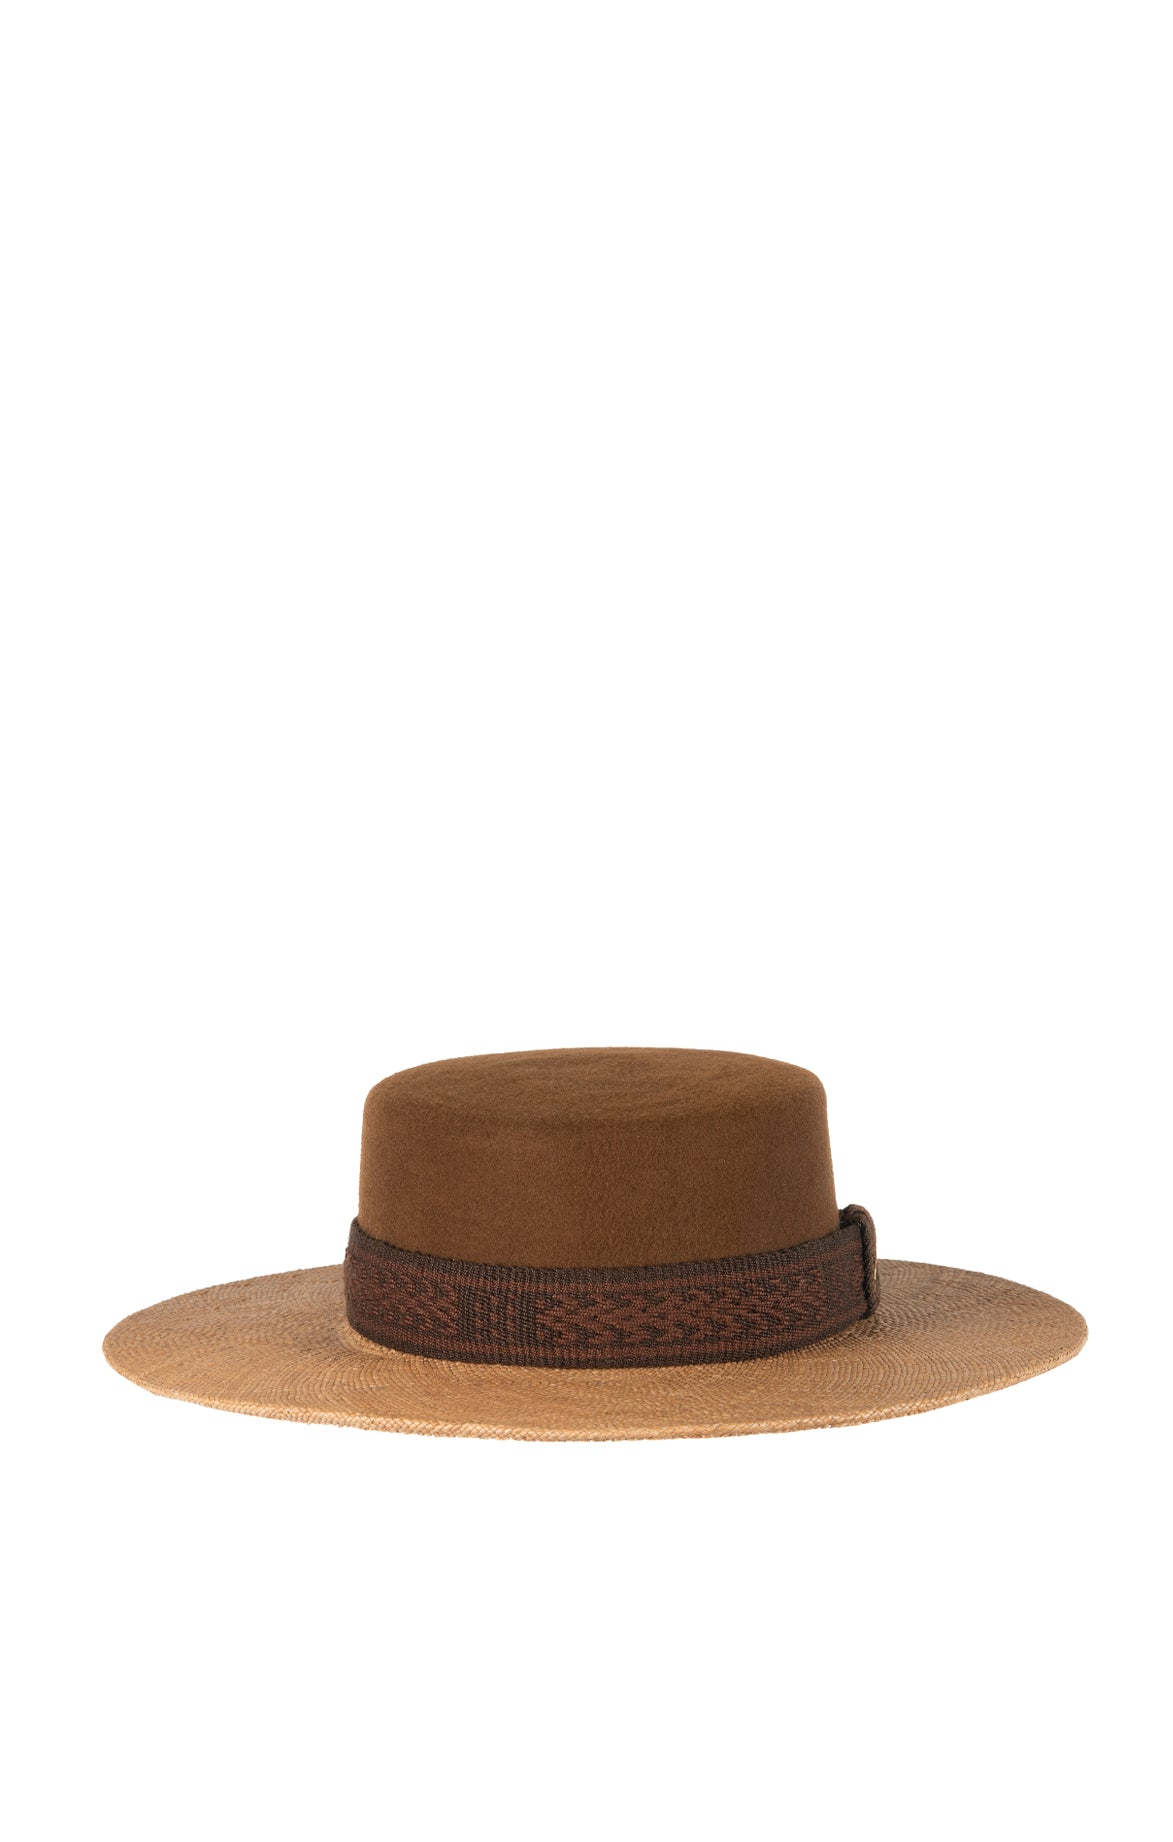 Mother Earth Felt & Straw Hat